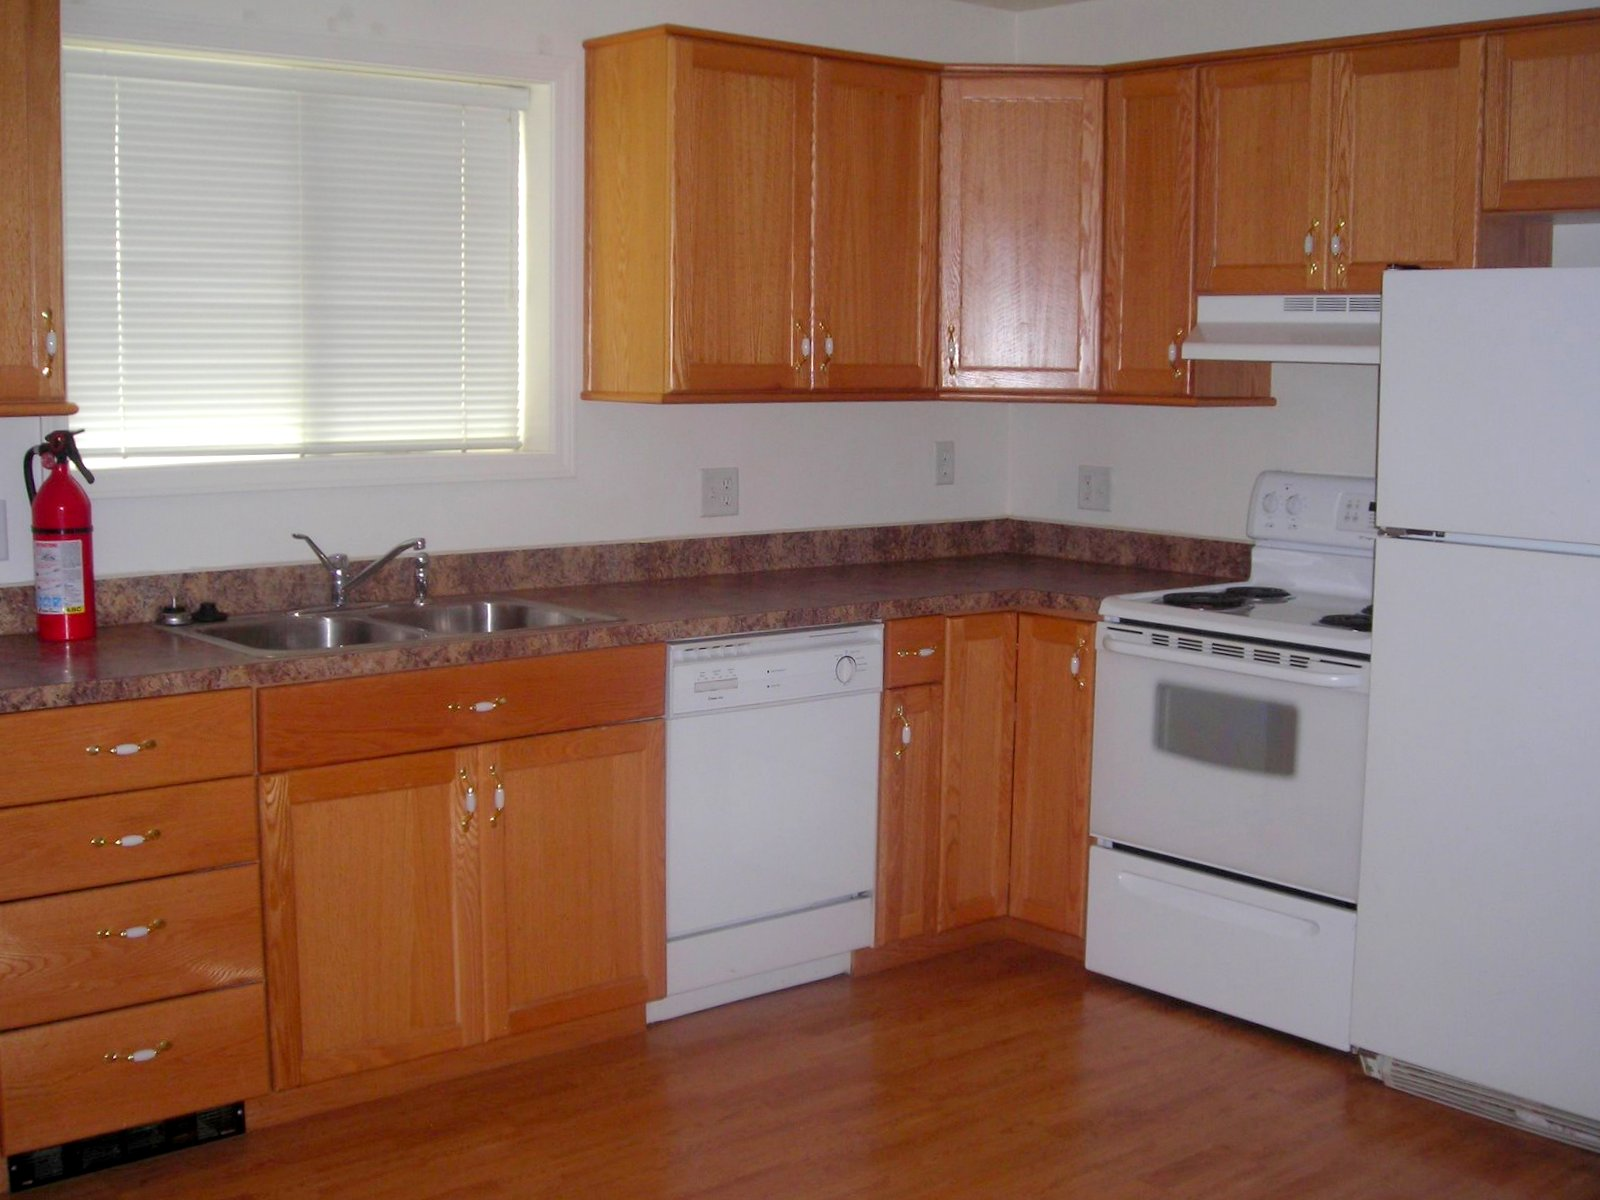 1 Bedroom Apartments With Washer And Dryer Hookups 1 Bedroom Apartments With Washer And Dryer